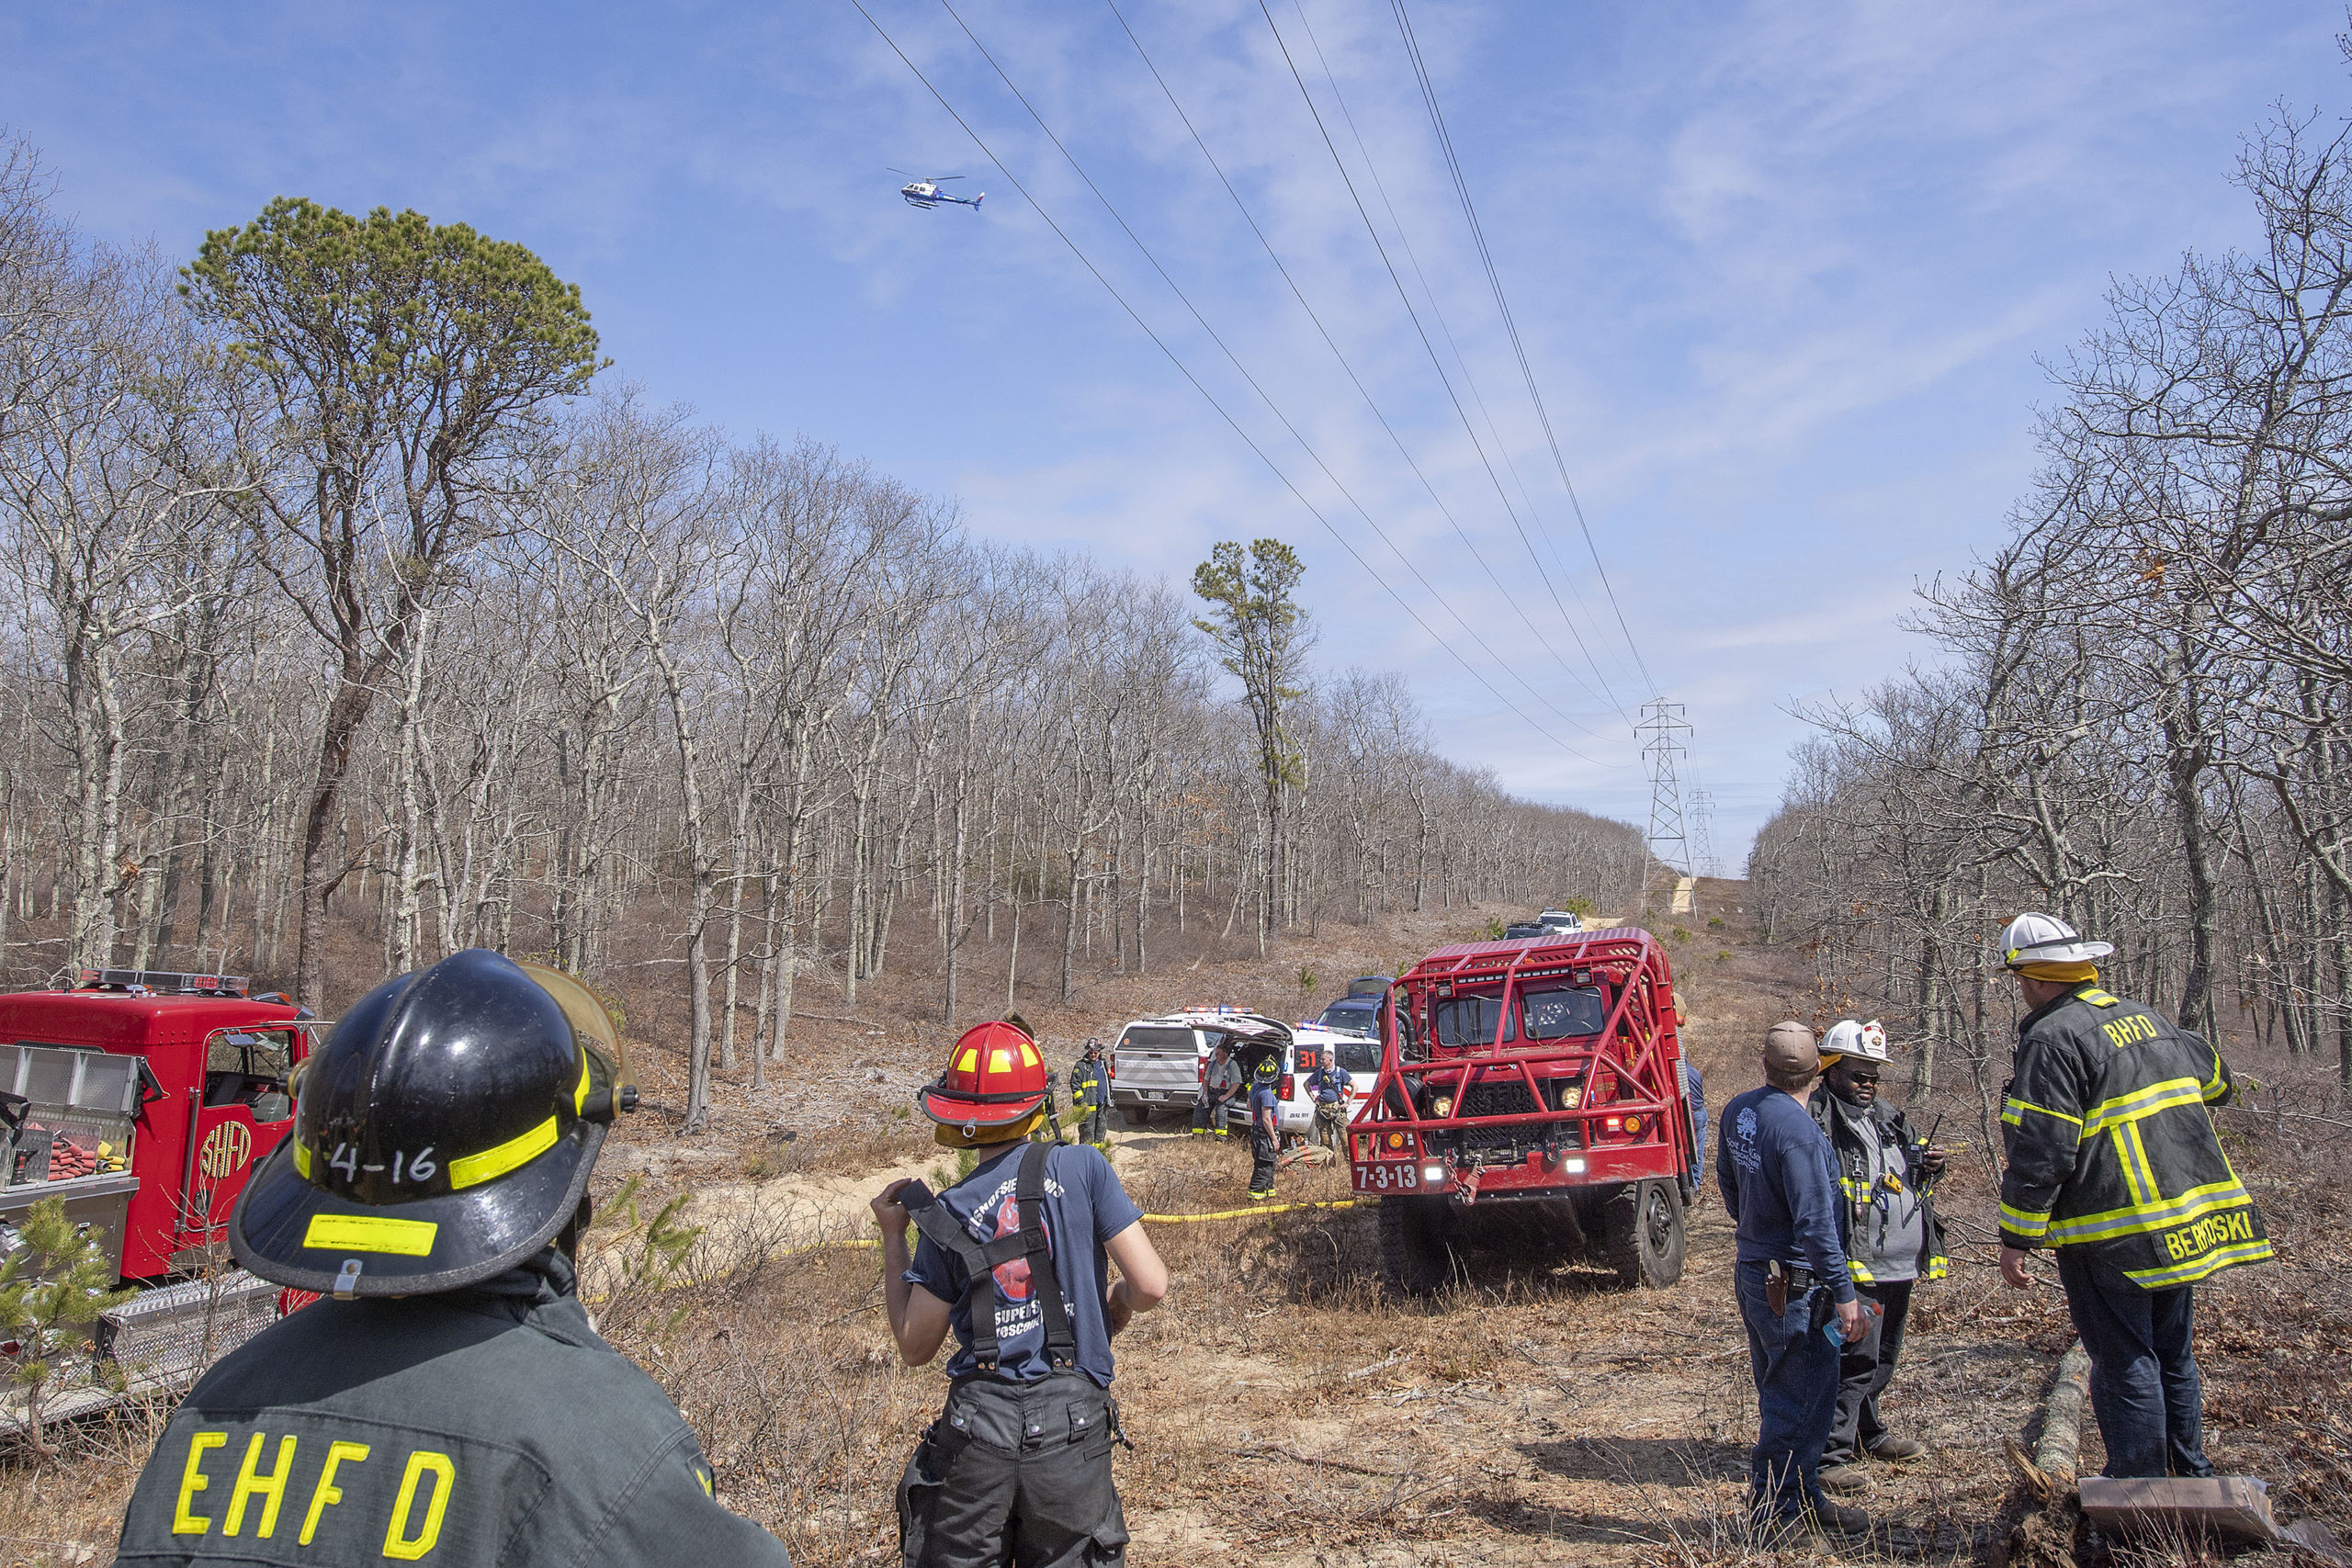 The county's helicopter checked for smoldering hot spots after the fire was out.